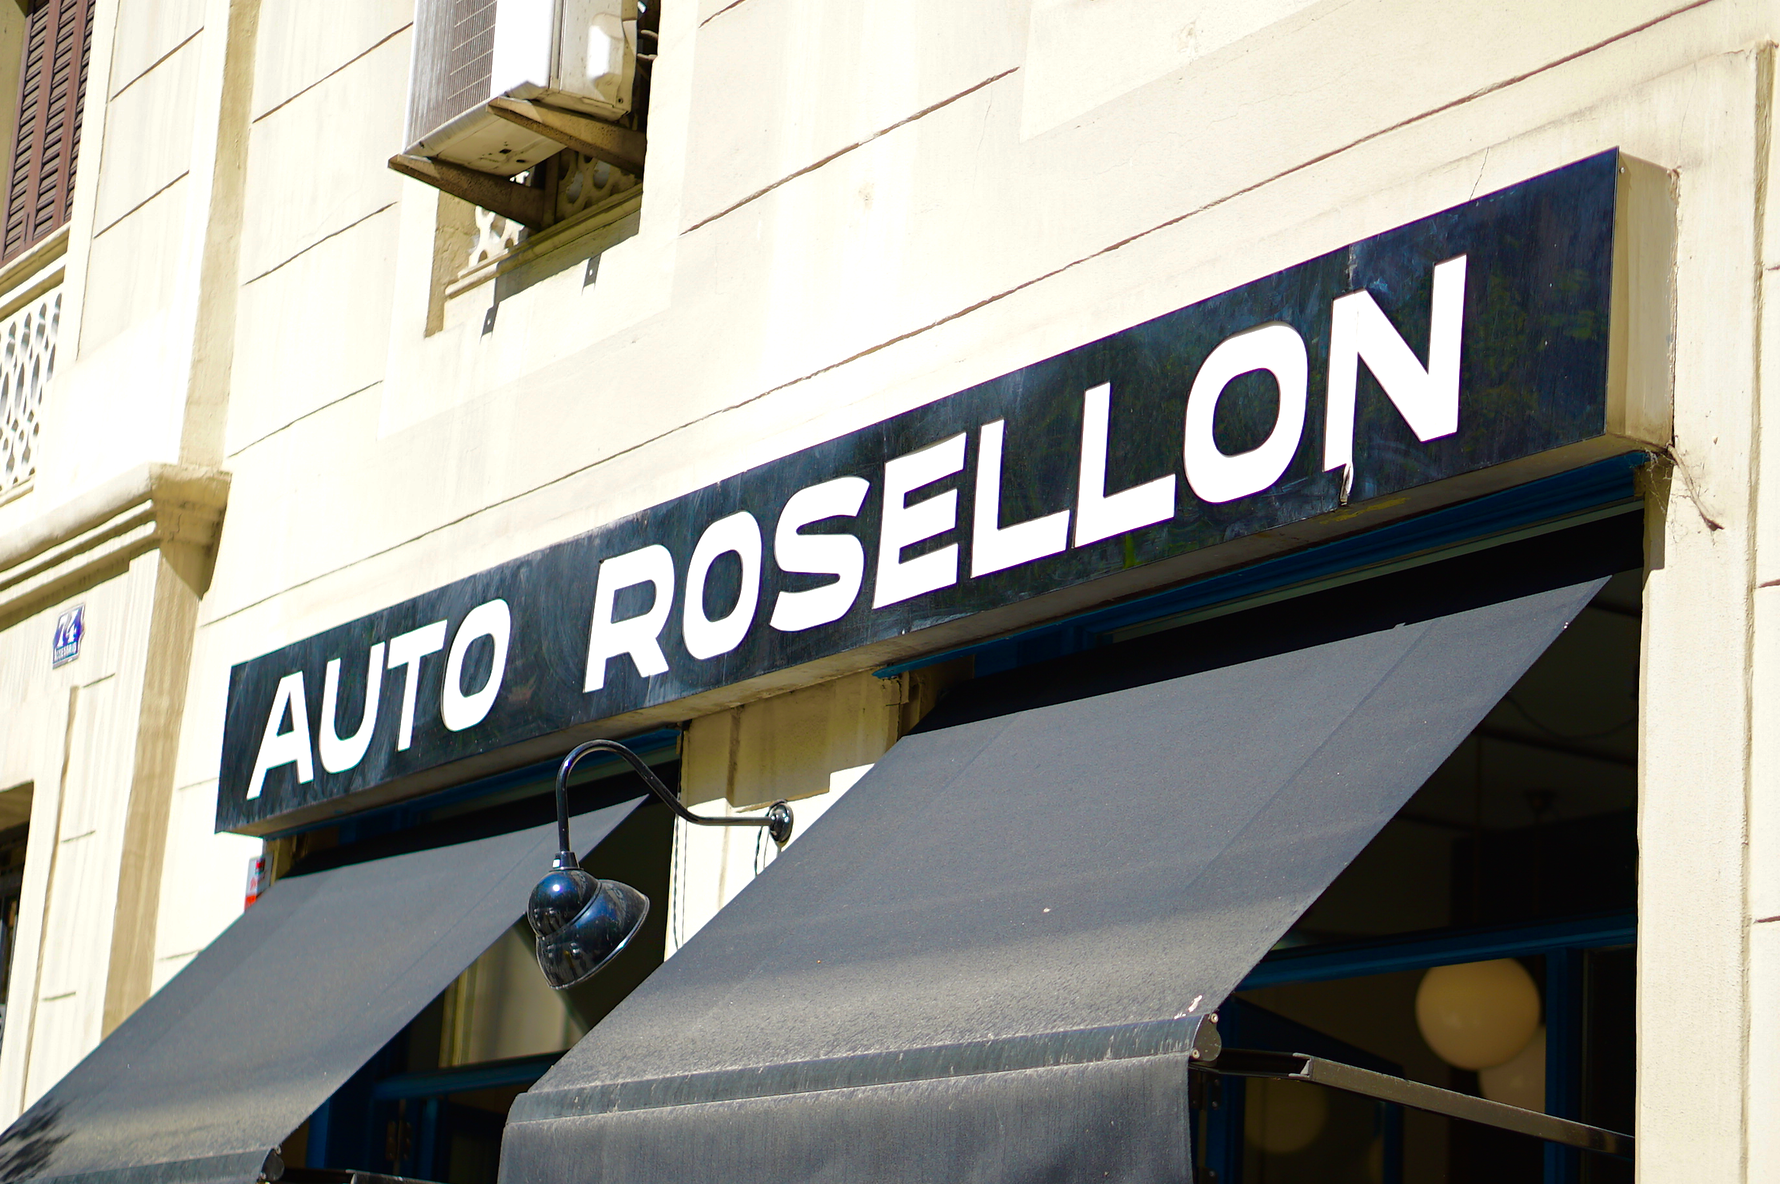 Auto Rosellon (Eating in Barcelona)